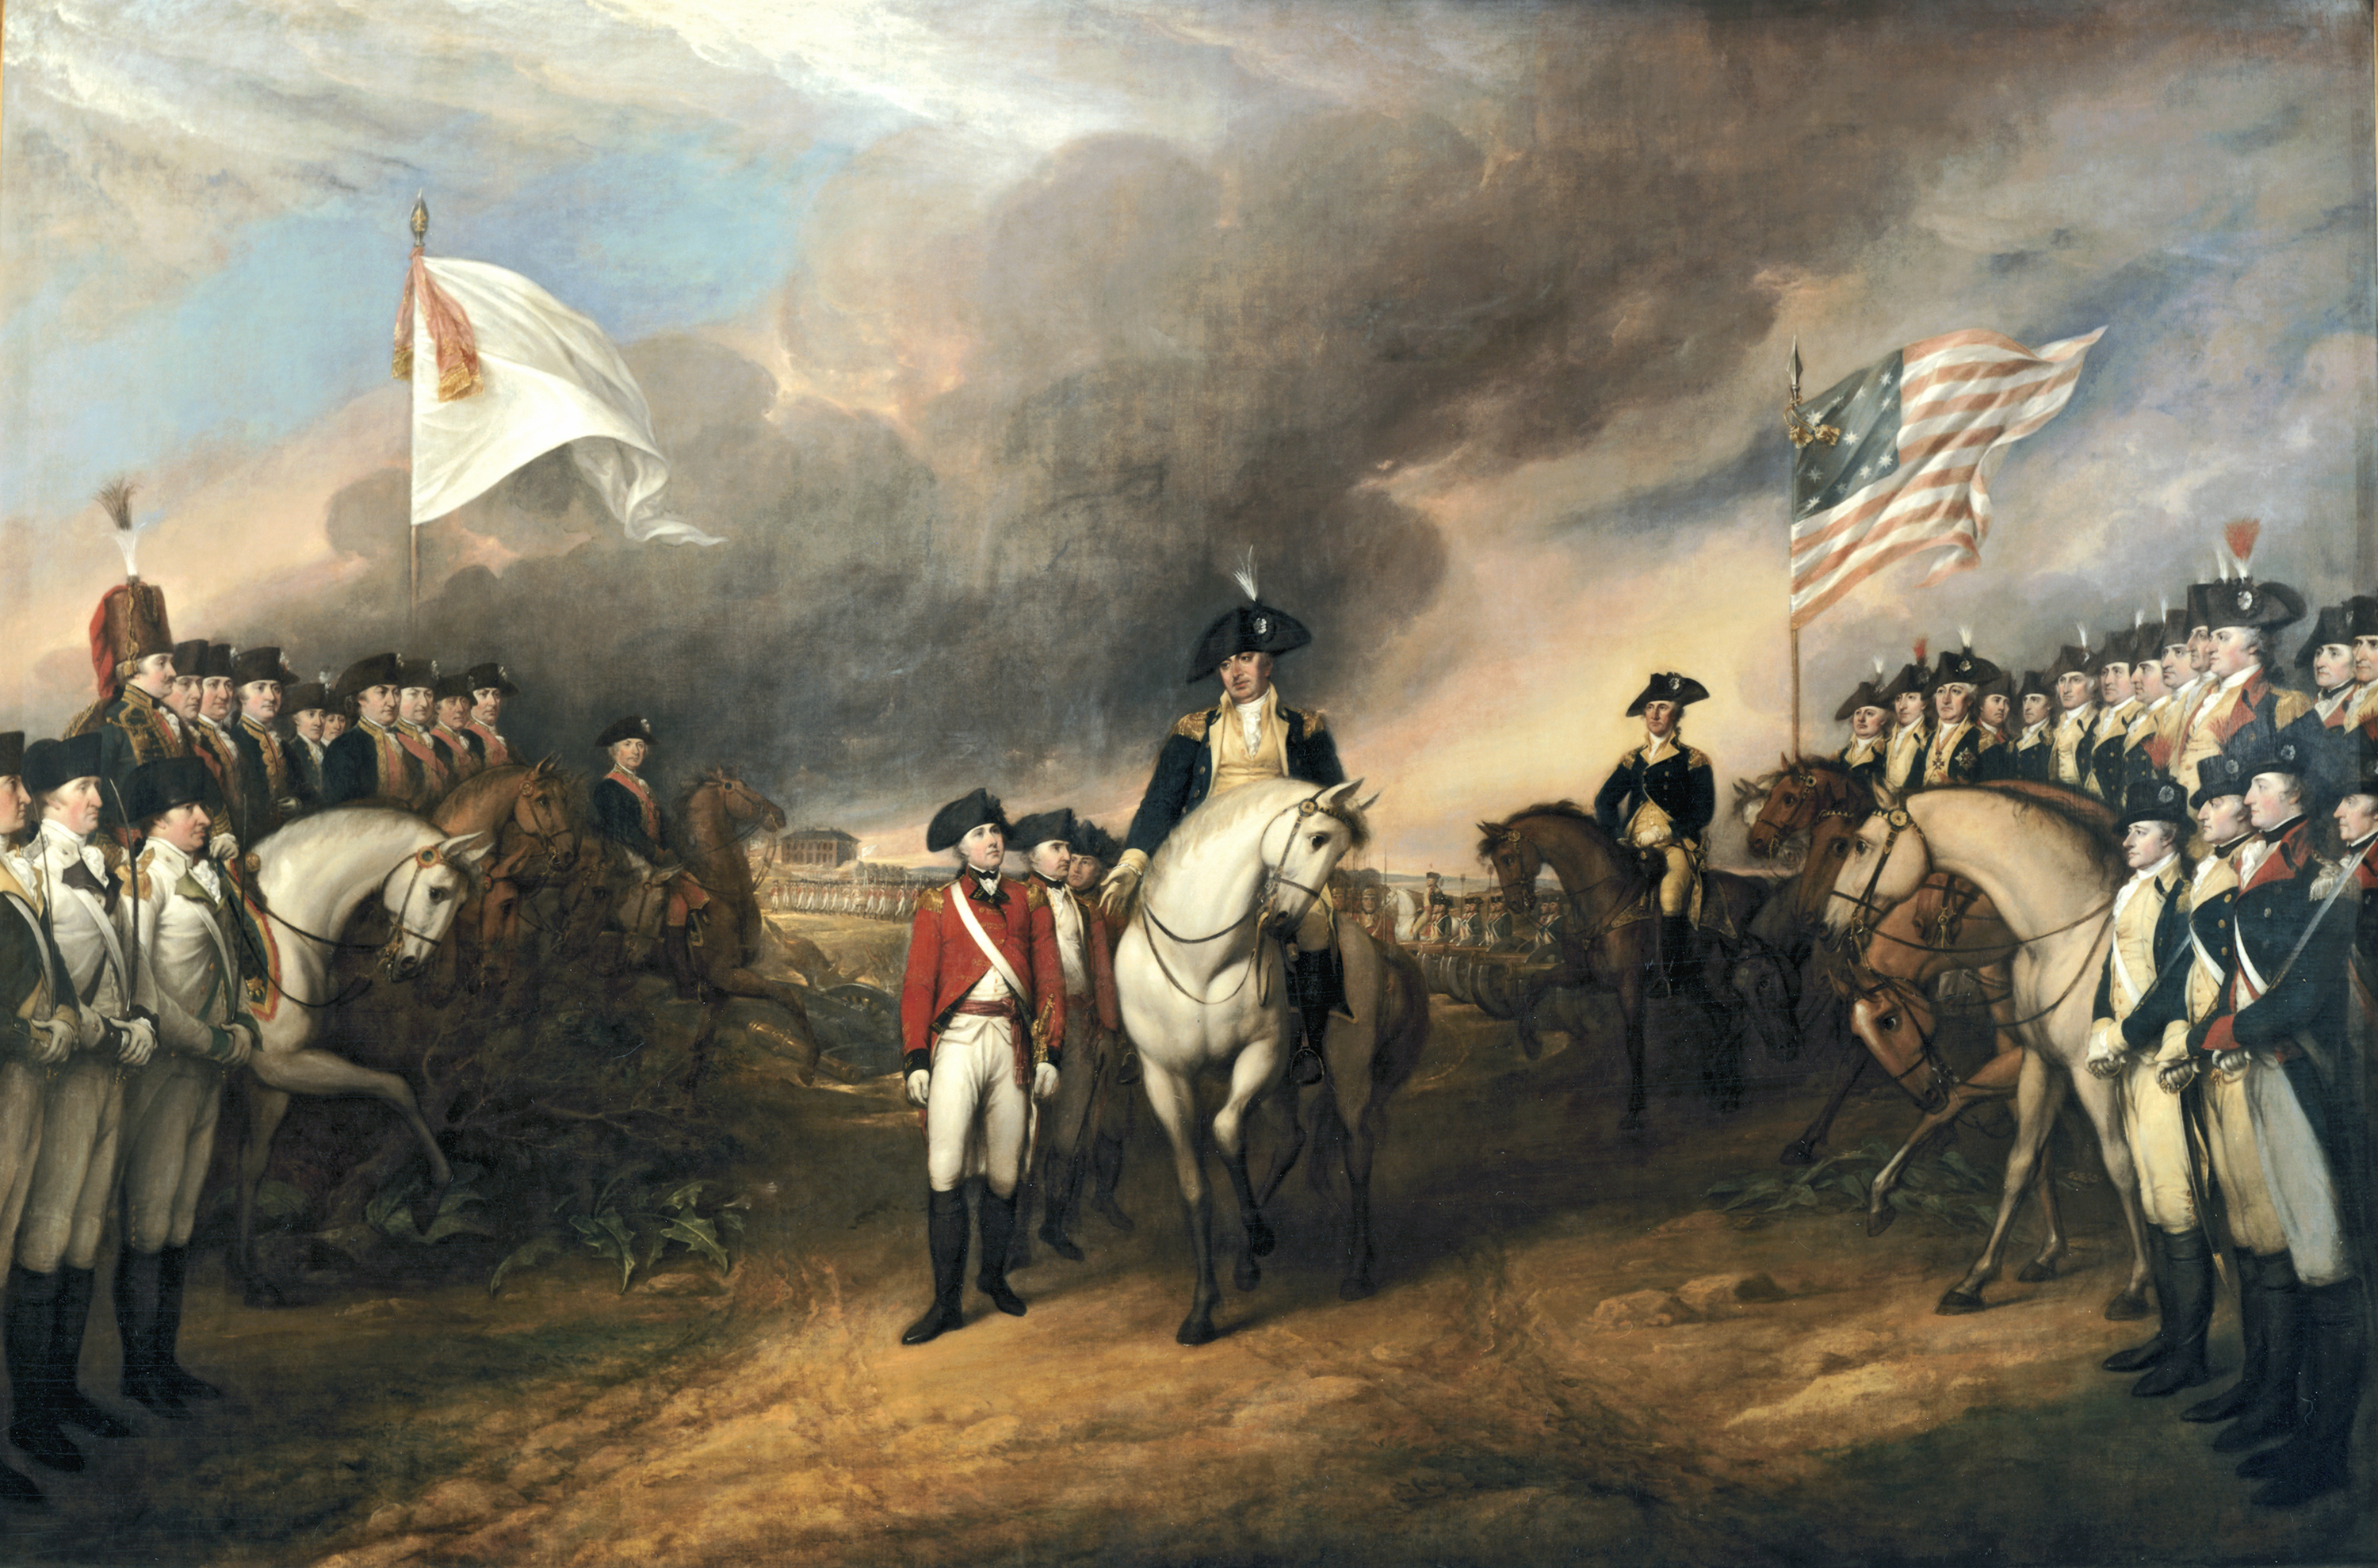 The Surrender of Lord Cornwallis by John Trumbull depicts the forces of British Major General Charles Cornwallis, 1st Marquess Cornwallis (1738–1805) (who was not himself present at the surrender), surrendering to French and American forces after the Siege of Yorktown (September 28 – October 19, 1781) during the American Revolutionary War. The central figures depicted are Generals Charles O'Hara and Benjamin Lincoln. The United States government commissioned Trumbull to paint patriotic paintings, including this piece, for them in 1817, paying for the piece in 1820.